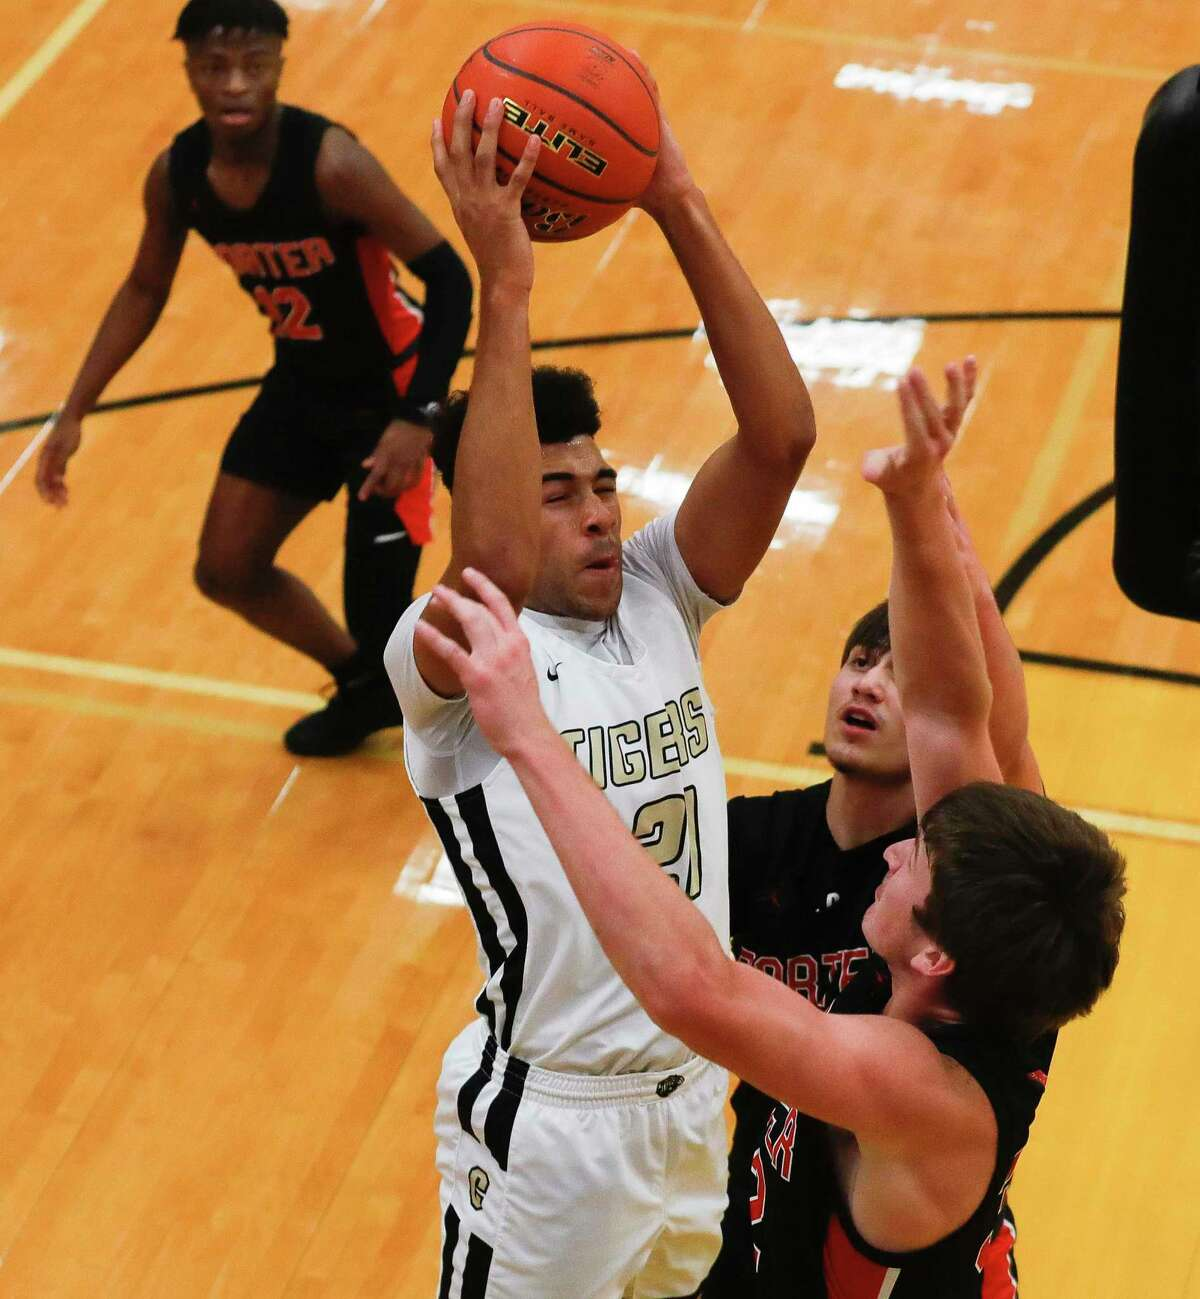 Conroe's Deante Williams goes up for a shot under pressure during the first quarter of a non-district high school basketball game at Conroe High School, Tuesday, Dec. 8, 2020, in Conroe.